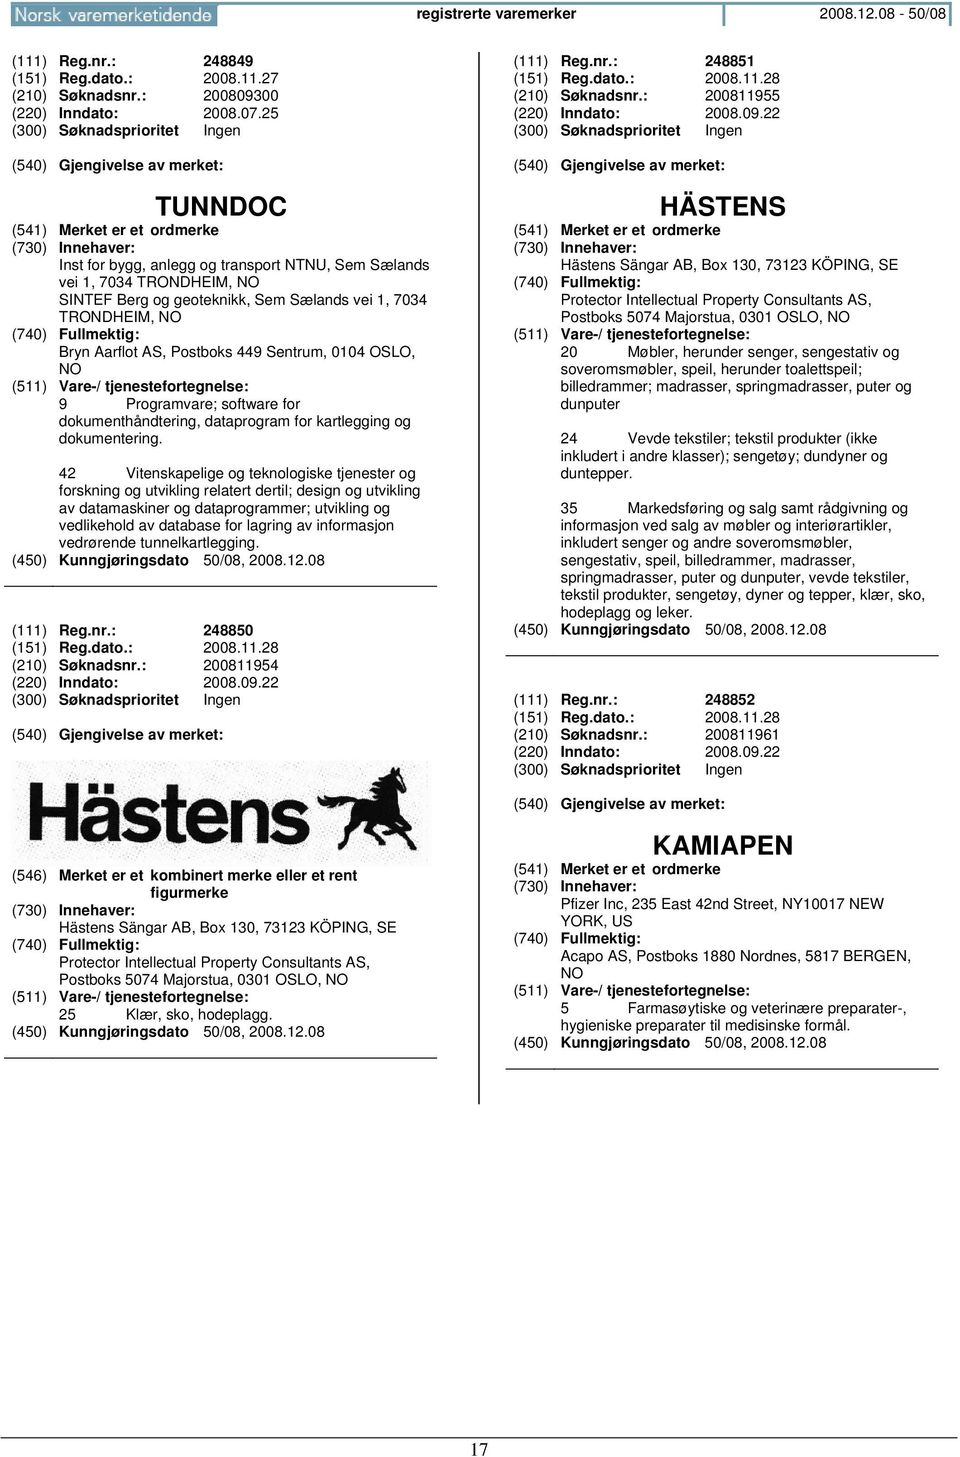 OSLO, NO 9 Programvare; software for dokumenthåndtering, dataprogram for kartlegging og dokumentering.